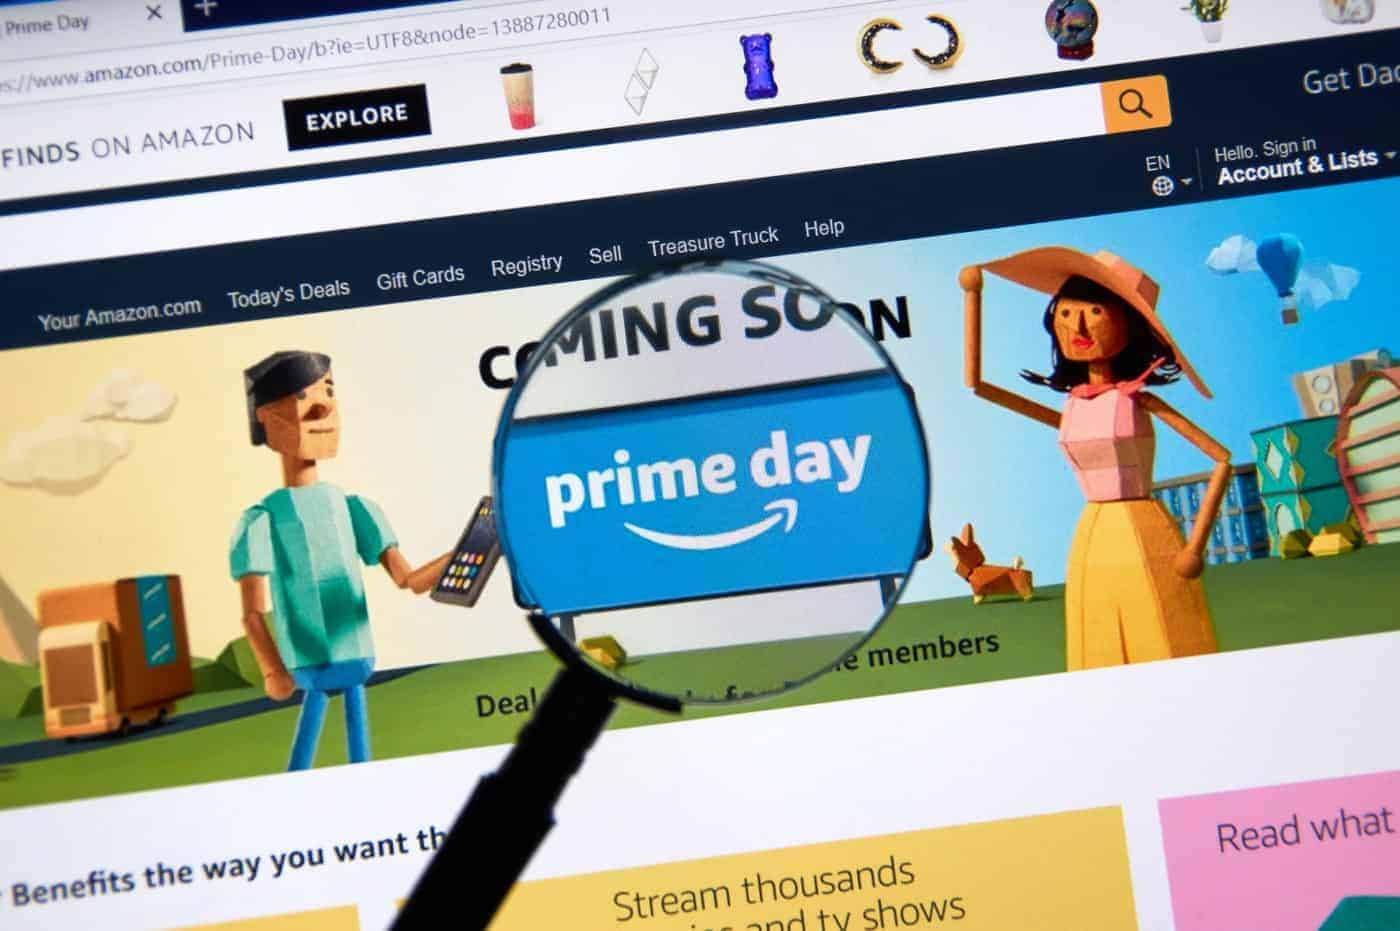 Amazon Prime Day Deals 2018 start on 16 July @ 3 pm ET